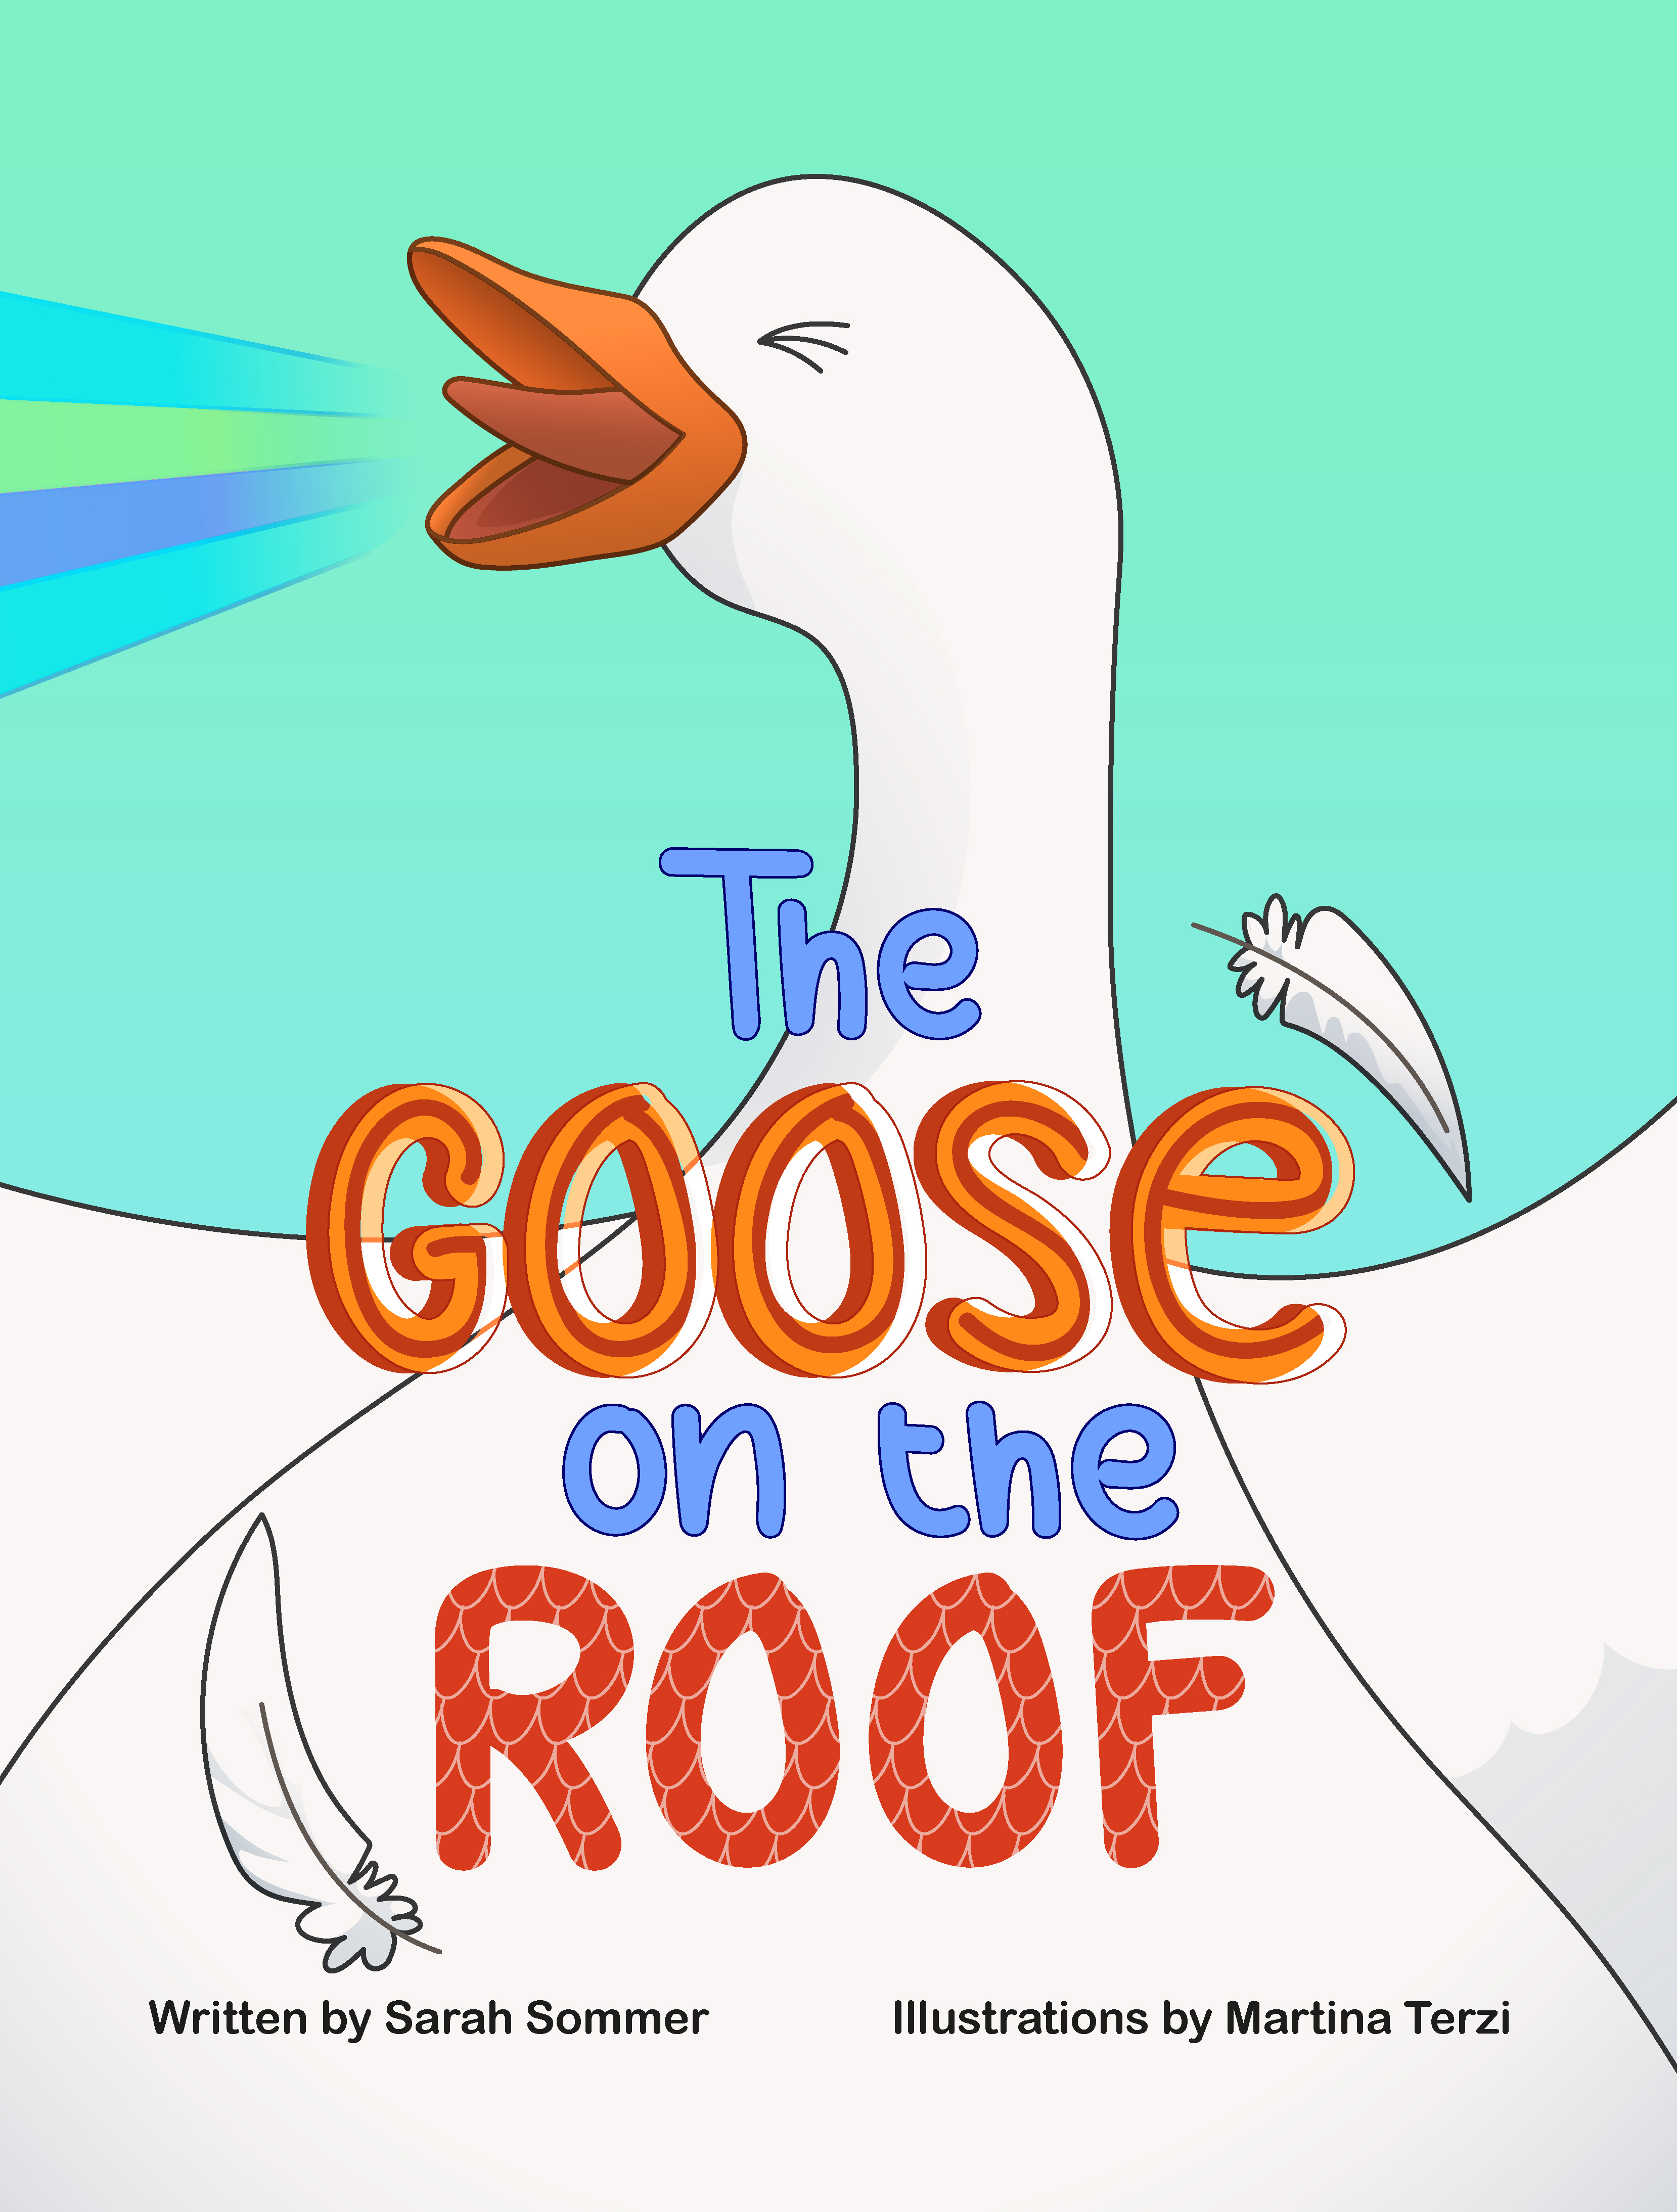 THE GOOSE ON THE ROOF